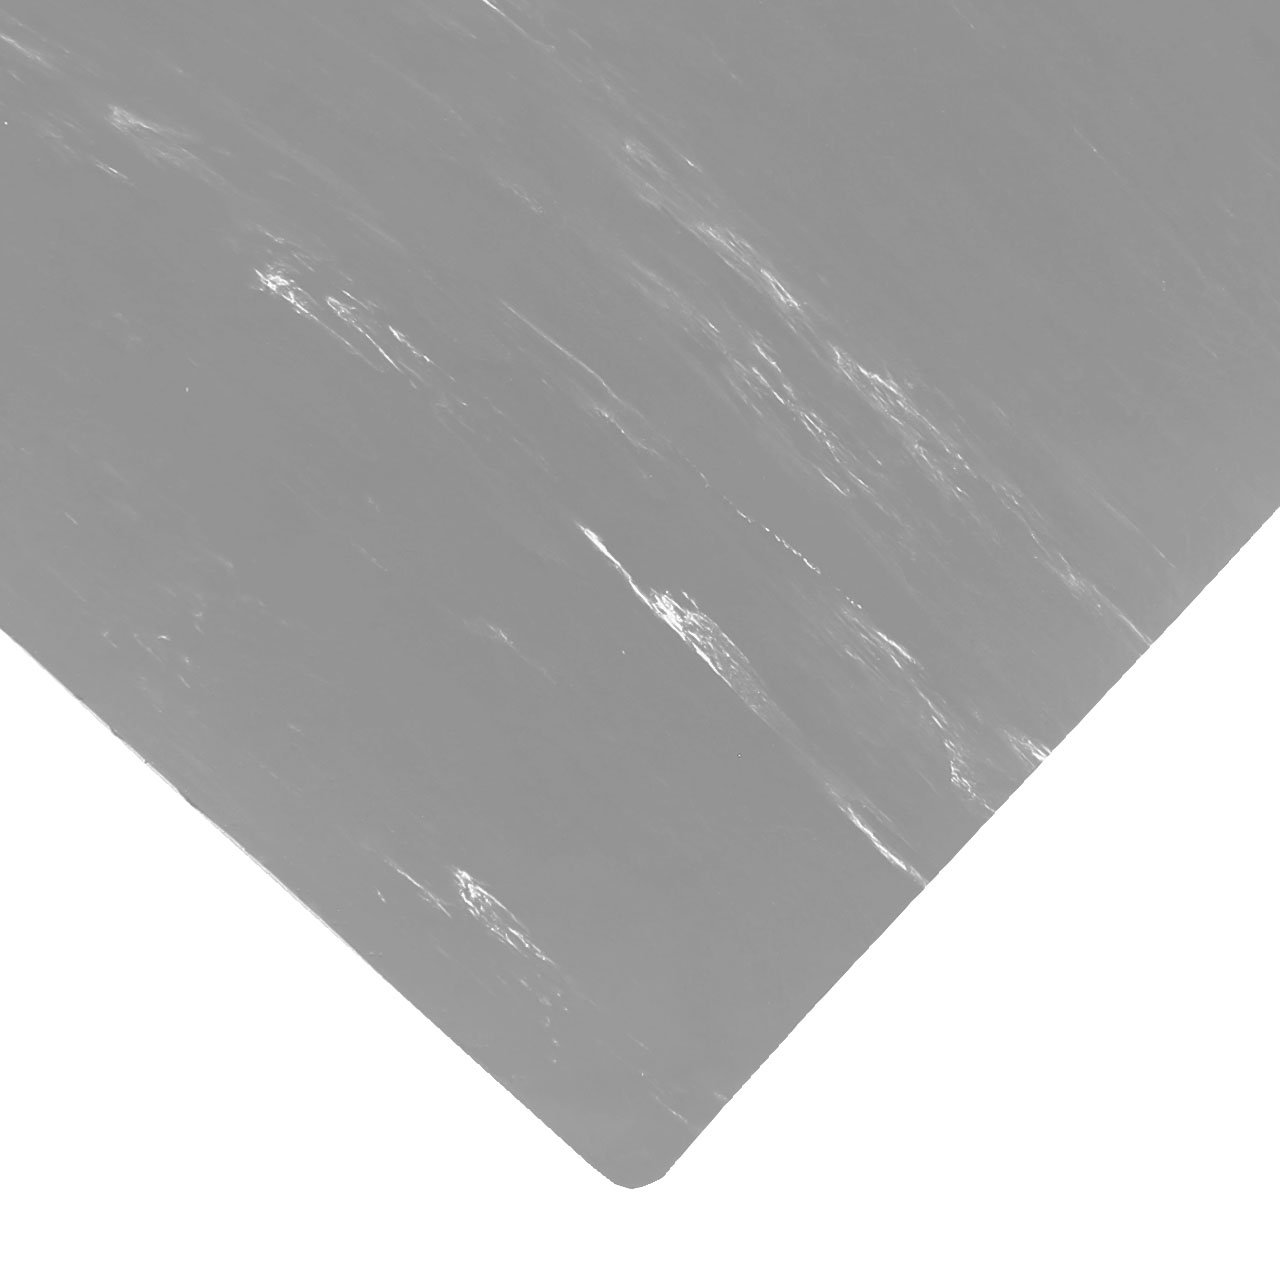 NoTrax Rubber 470 Marble Sof-Tyle Anti-Fatigue Mat, for Dry Areas, 2' Width x 3' Length x 1/2'' Thickness, Gray